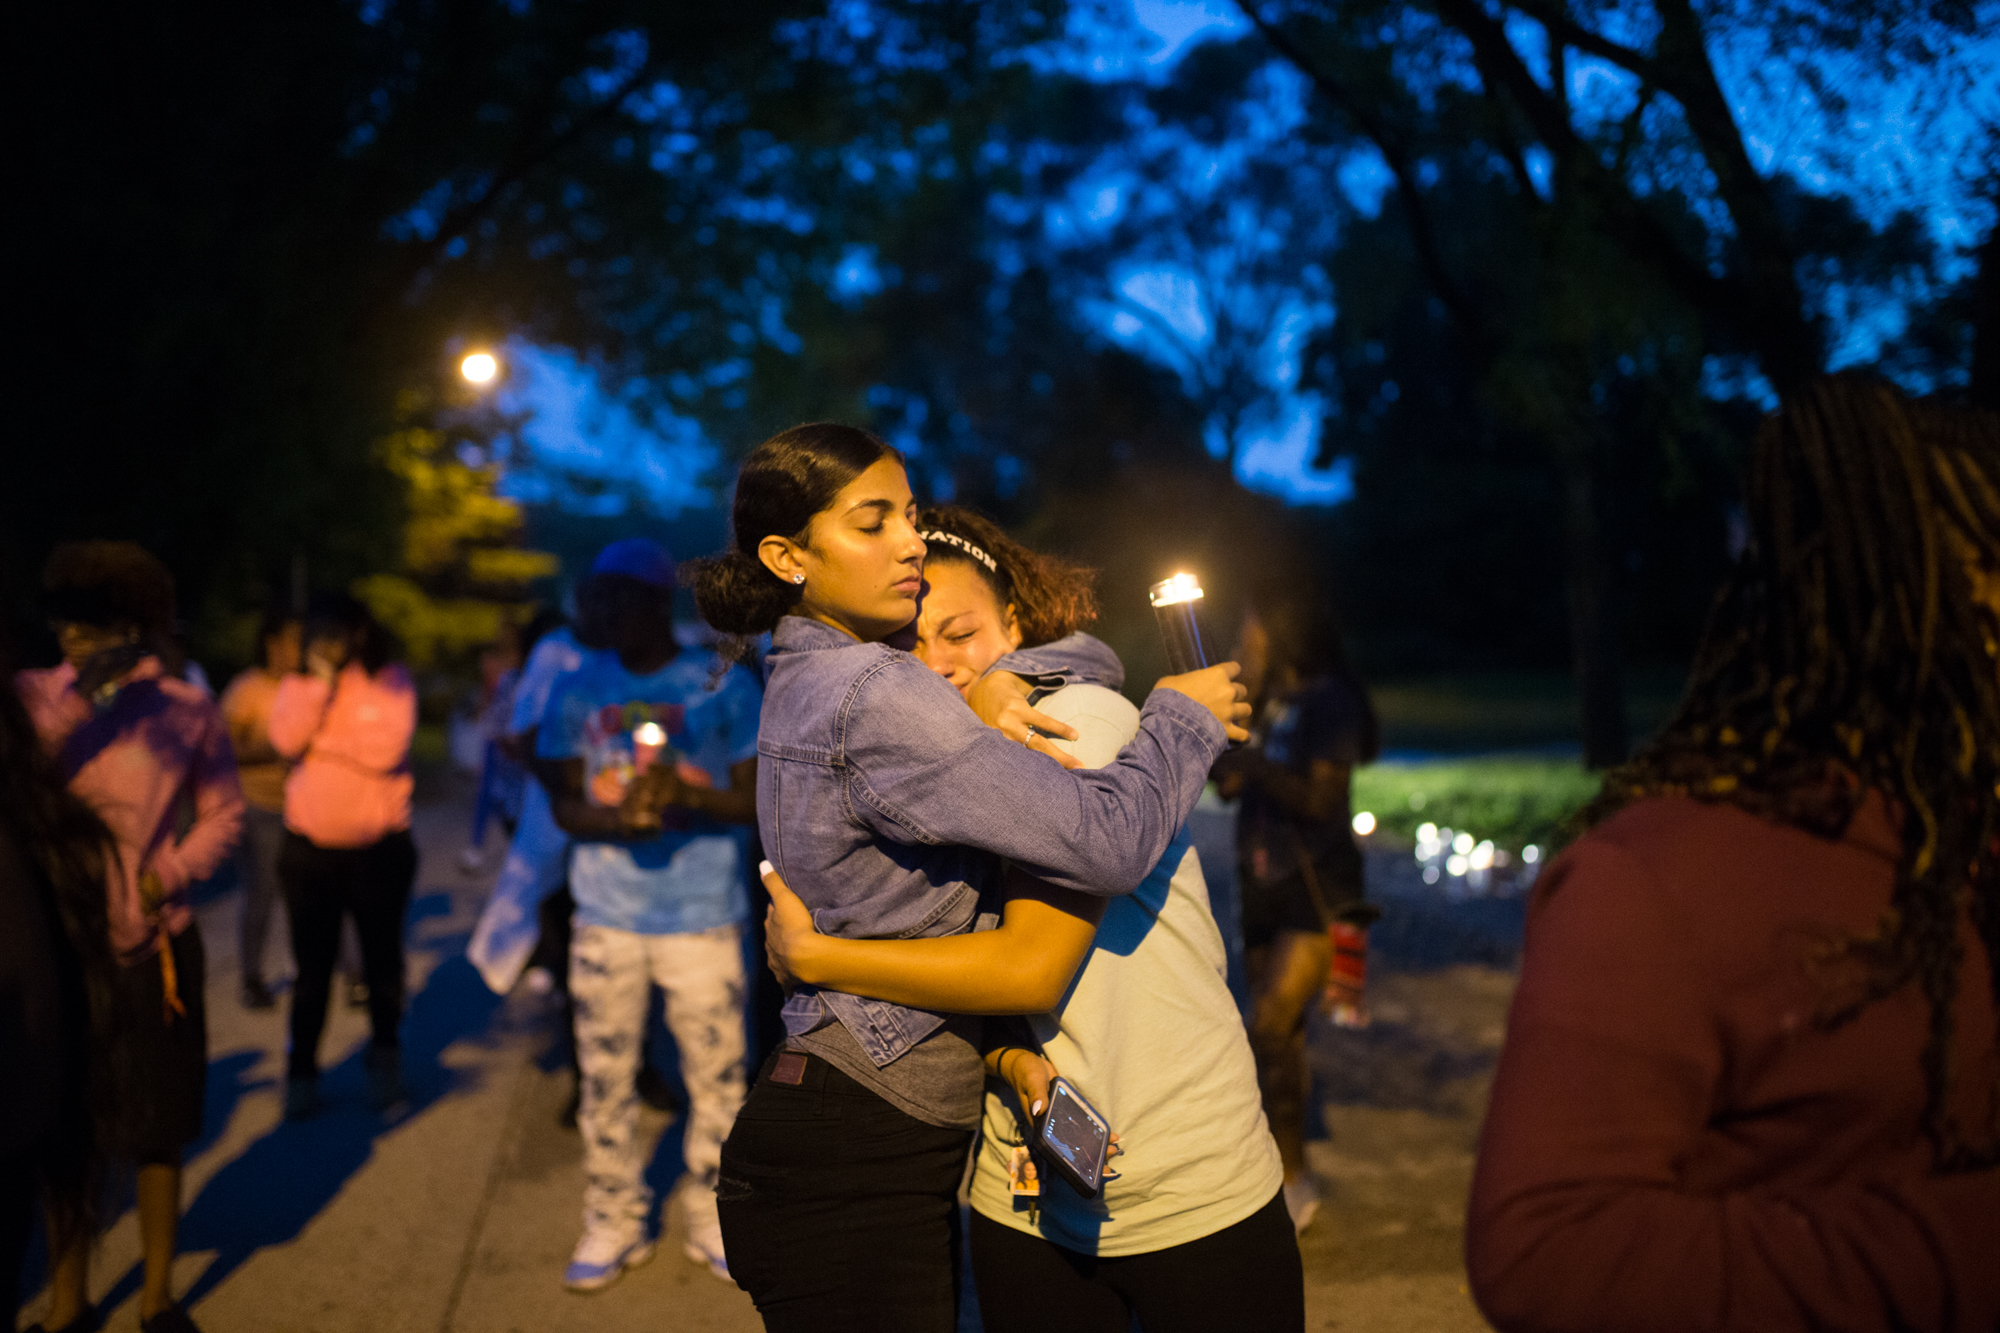 Fatima Alubaidy, 16, left, and Elizabeth Tardio, 17, both classmates of slain Jefferson High School junior Marshawna Williams, tearfully embrace during a candlelight vigil on Thursday, Sept. 20, 2018, in the 2300 block of Clover Avenue where Williams was fatally shot in Rockford. [SCOTT P. YATES/RRSTAR.COM STAFF]